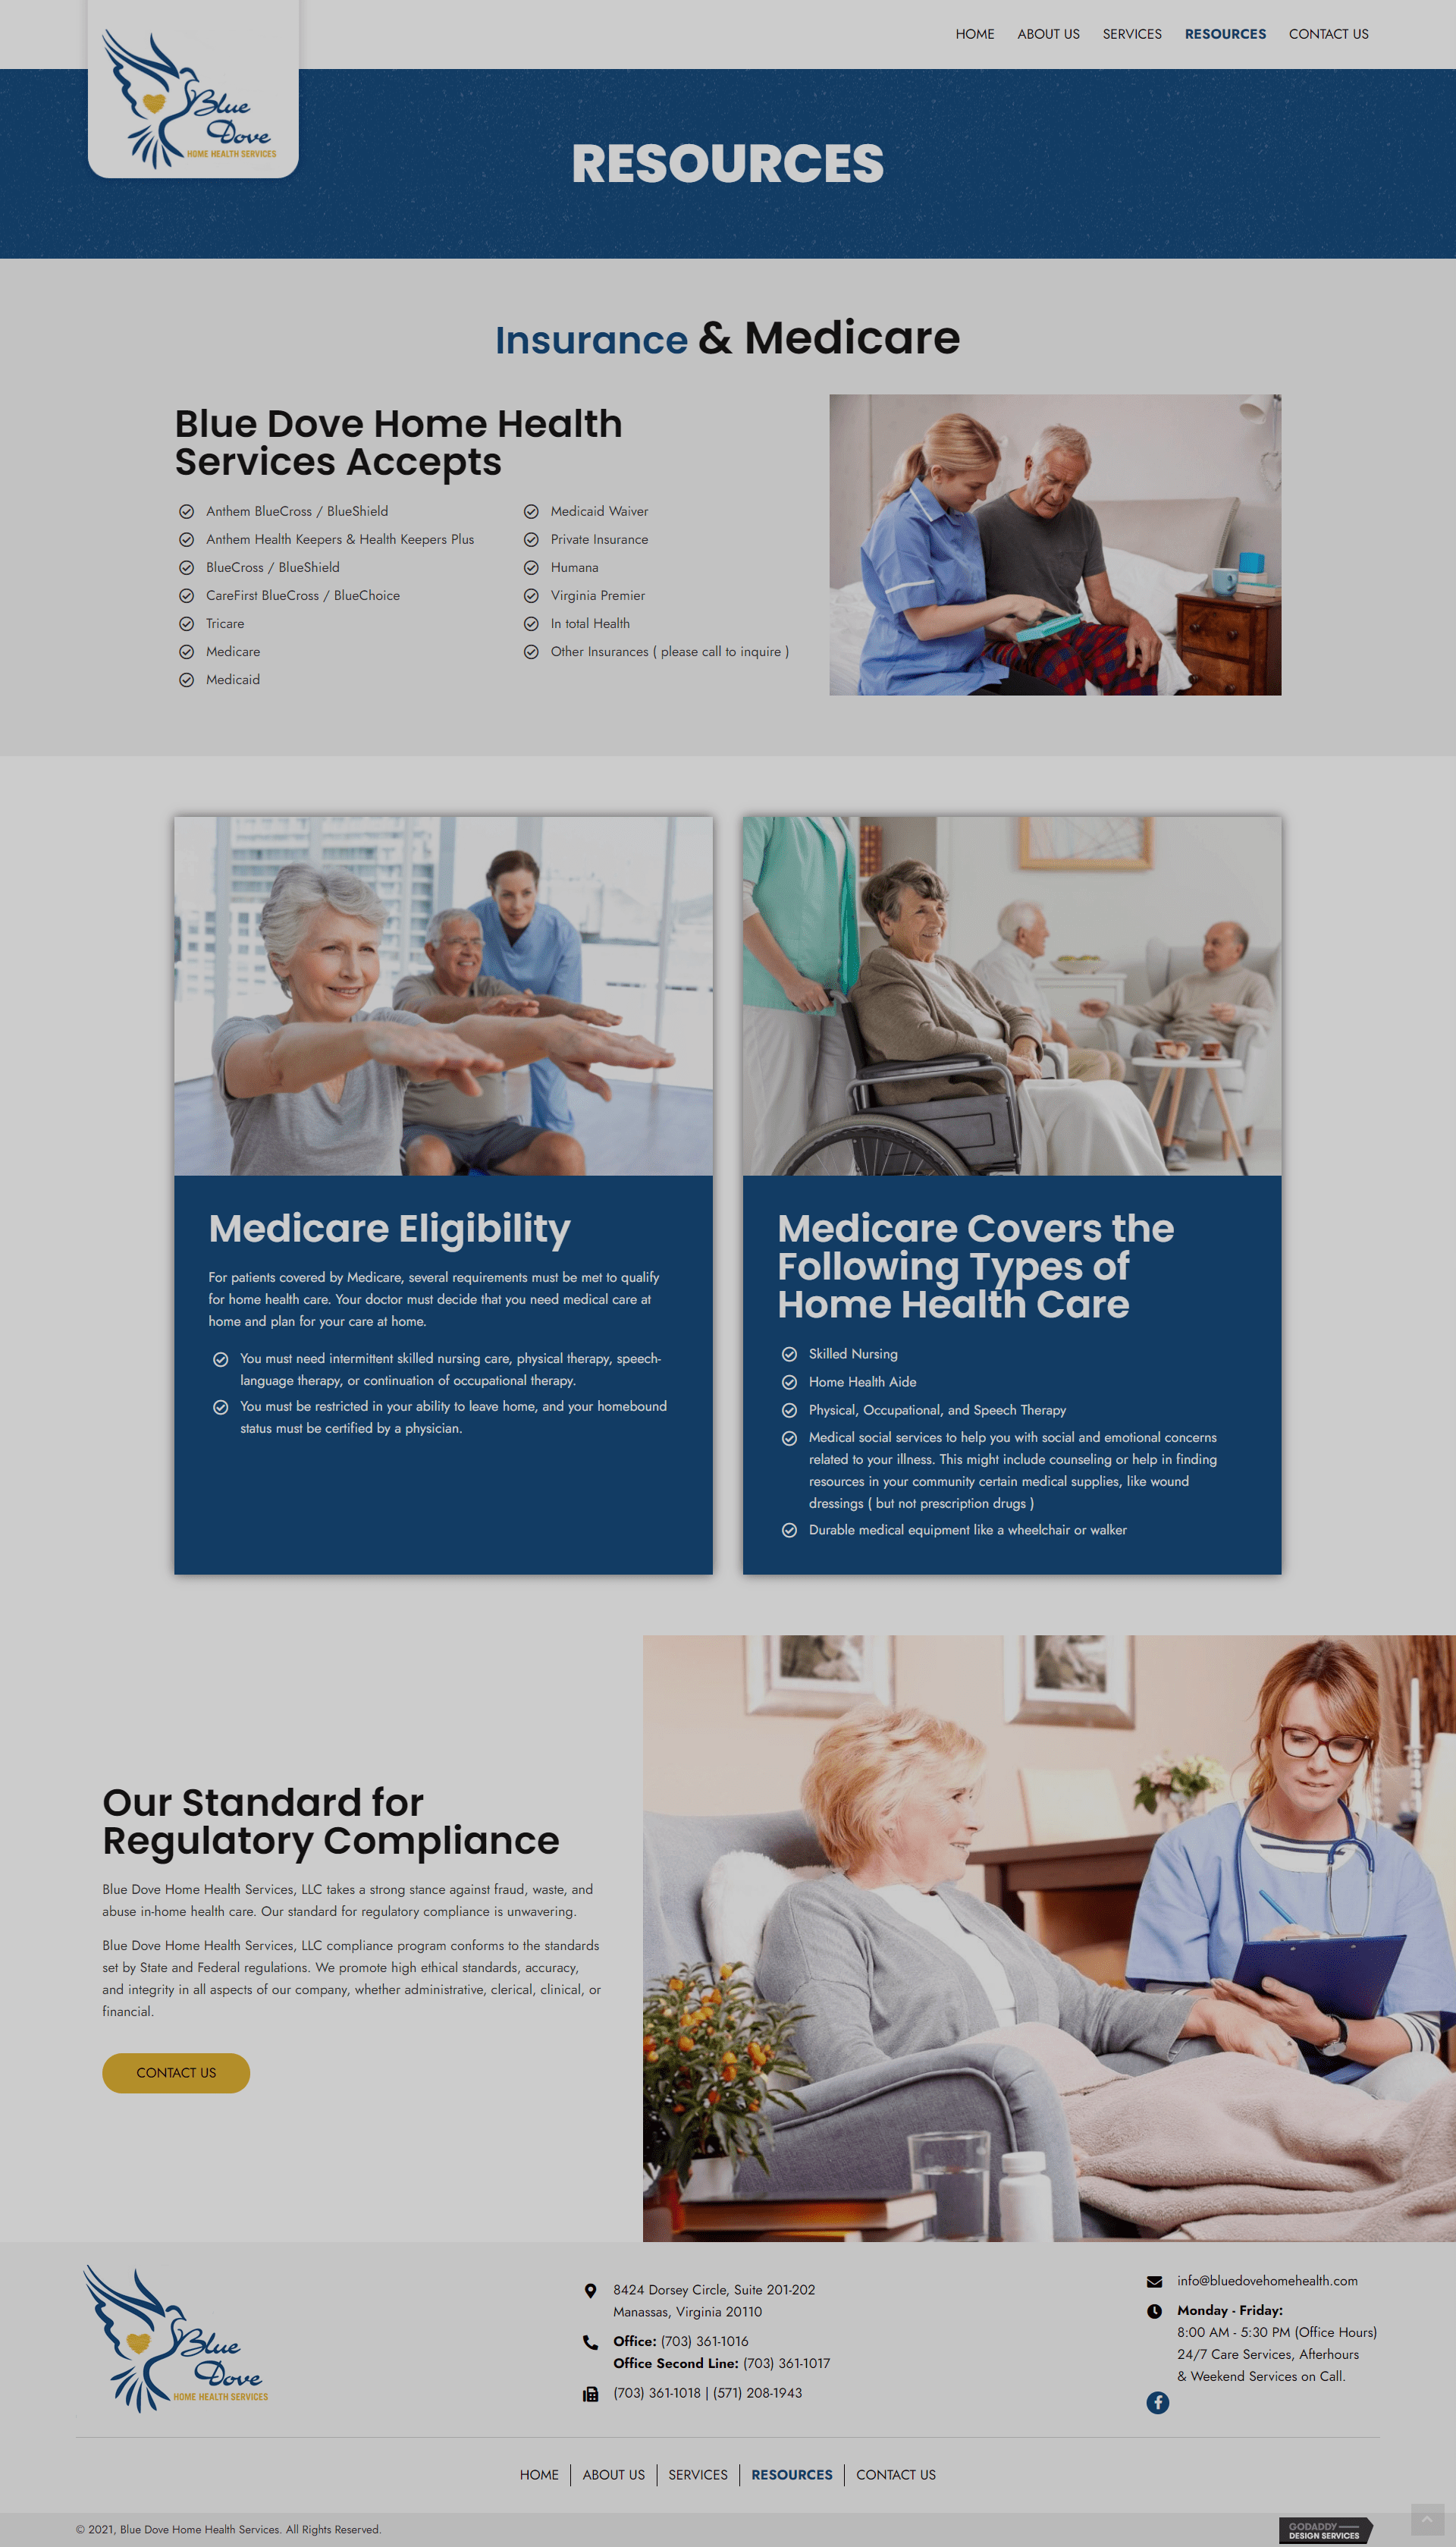 Blue Dove Home Health Services Resources